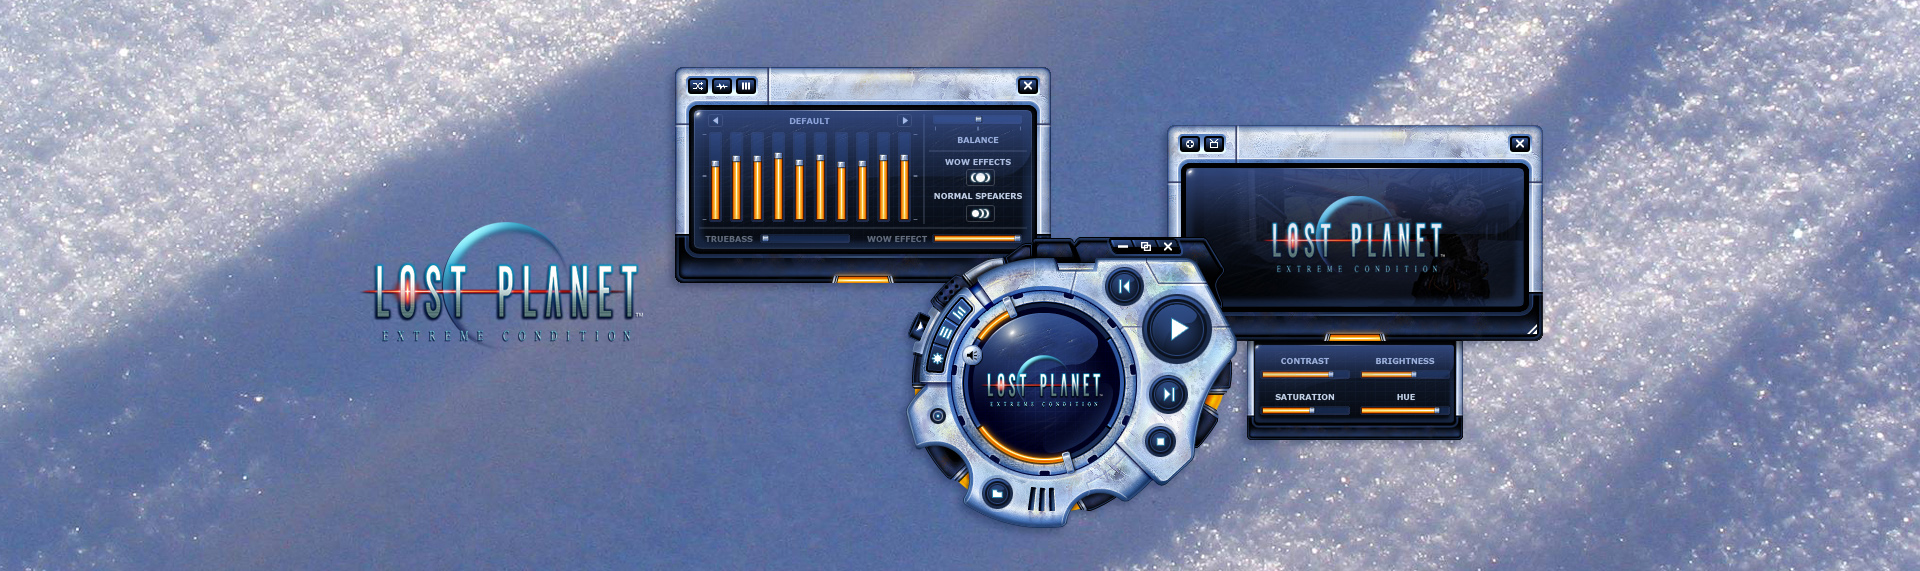 Lost Planet  Client: Capcom  Capcom and The Skins Factory delivered the sub-zero, hyper-cool Windows Media Player 10 skin for the hit video game, Lost Planet. This exciting Windows Media Player 10 skin includes features like dual shutters, a retractable button compartment, sound FX, animations, a searchable playlist and many exciting stills and information from the upcoming game release of -- Lost Planet.